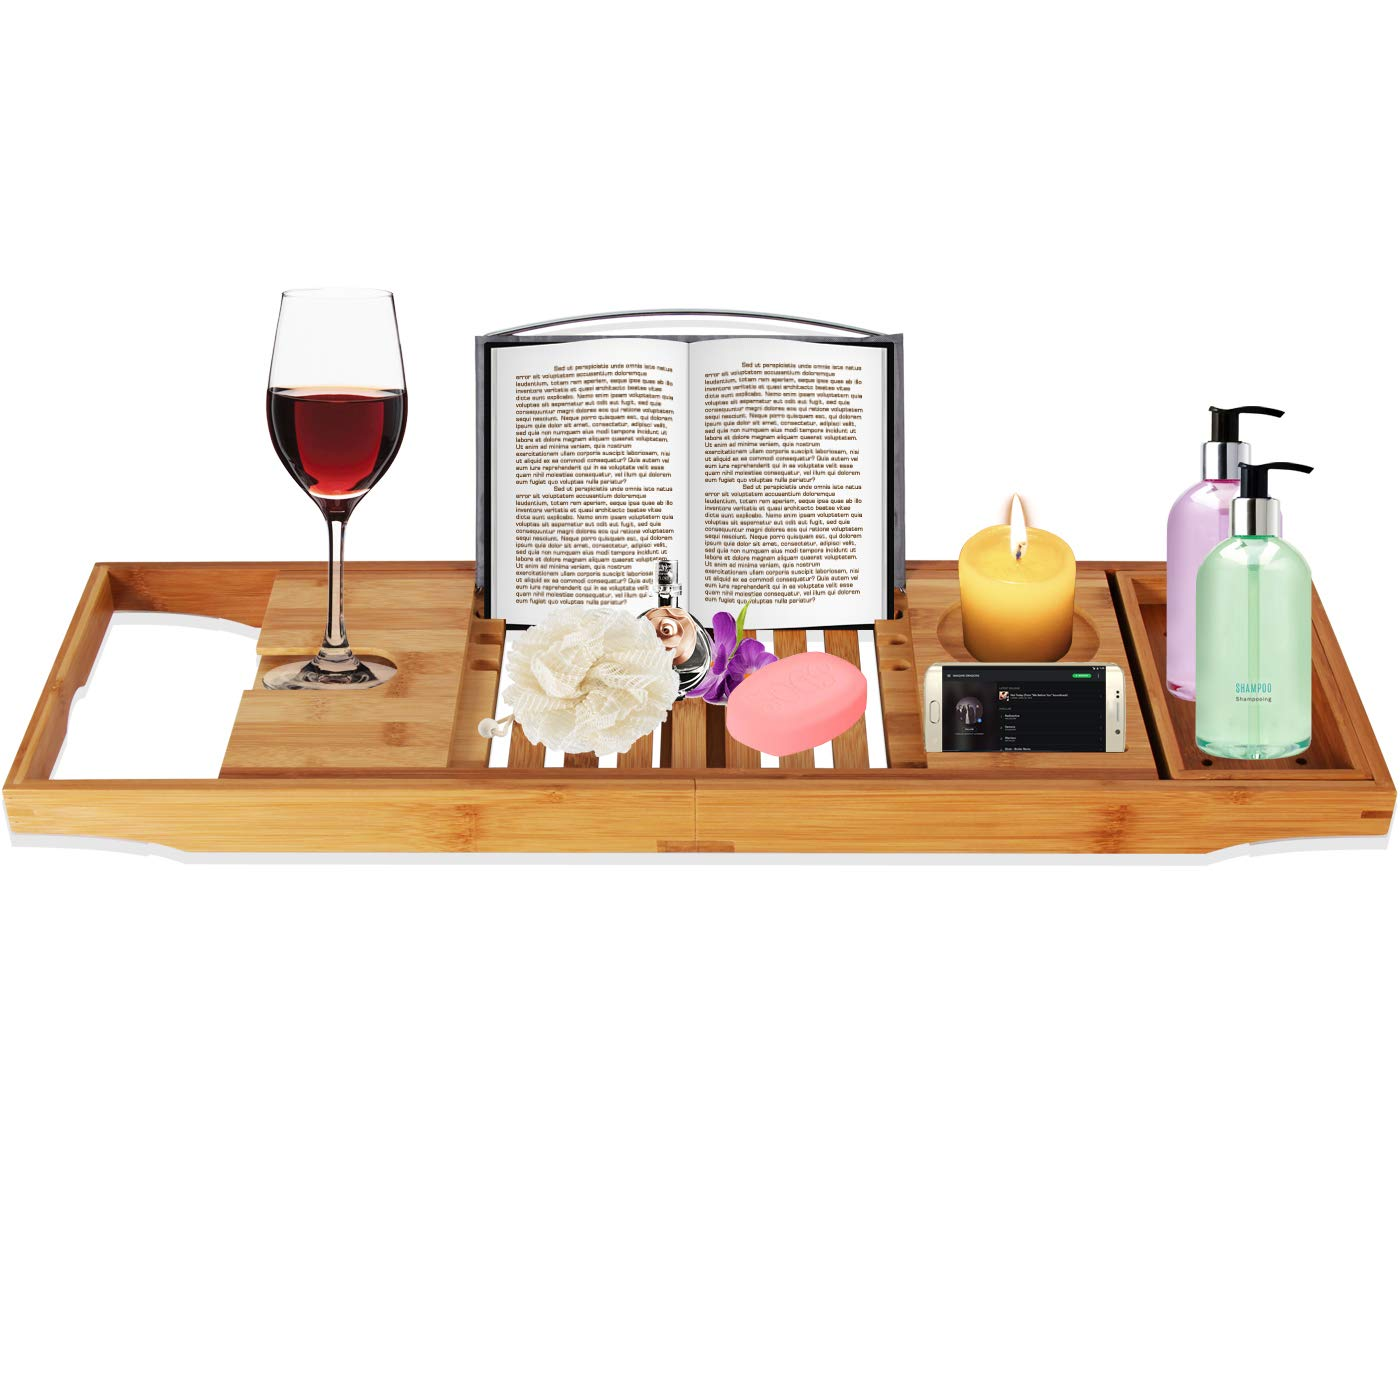 Draizee Adjustable Natural Bamboo Bathtub Caddy Tray with Reading Rack | Tablet Holder | Cellphone Tray | Wine Glass Holder| Waterproof Bathroom Vanity Organizer | Decorative Storage Accessories Tray